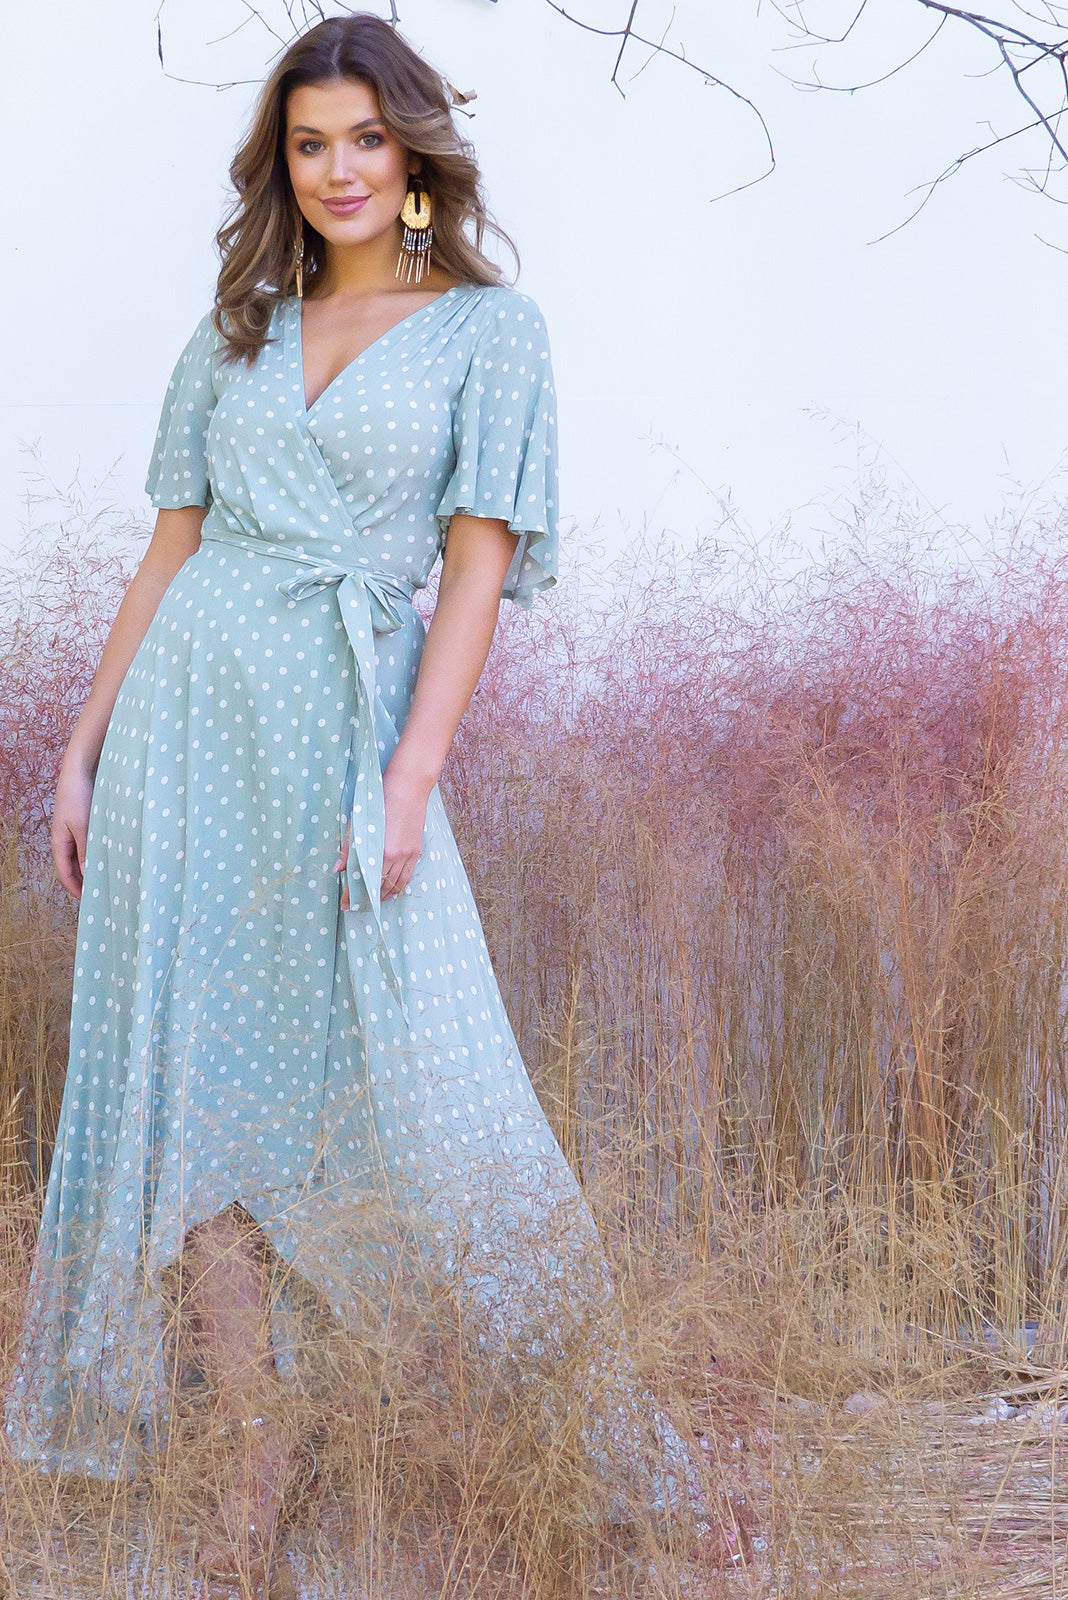 Cinnamon Pistachio Green Maxi Wrap Dress is 100% rayon. A gorgeous soft mint polka dot wrap dress., short petal sleeves, maxi back, midi front. Perfect for holiday and wedding season. Boho chic inspired.